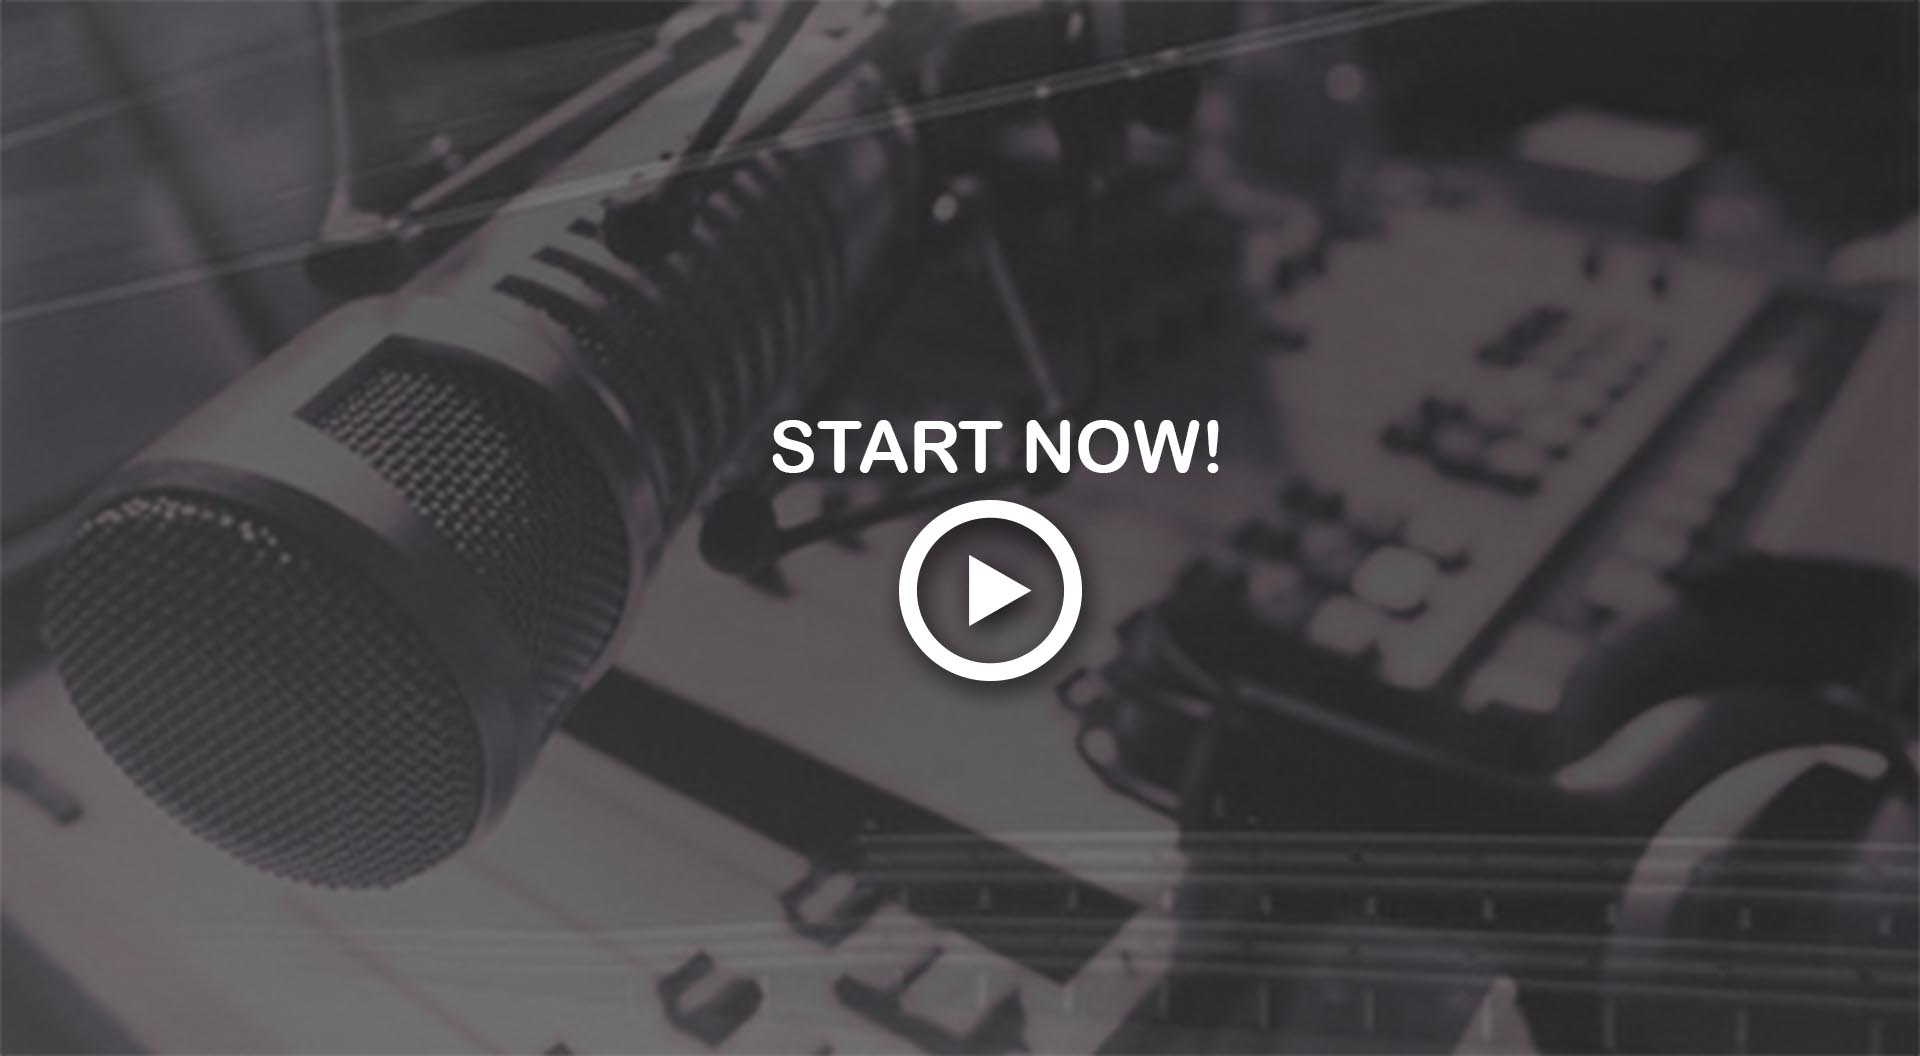 CREATE YOUR WEB RADIO - SHOUTCAST ICECAST UNLIMITED